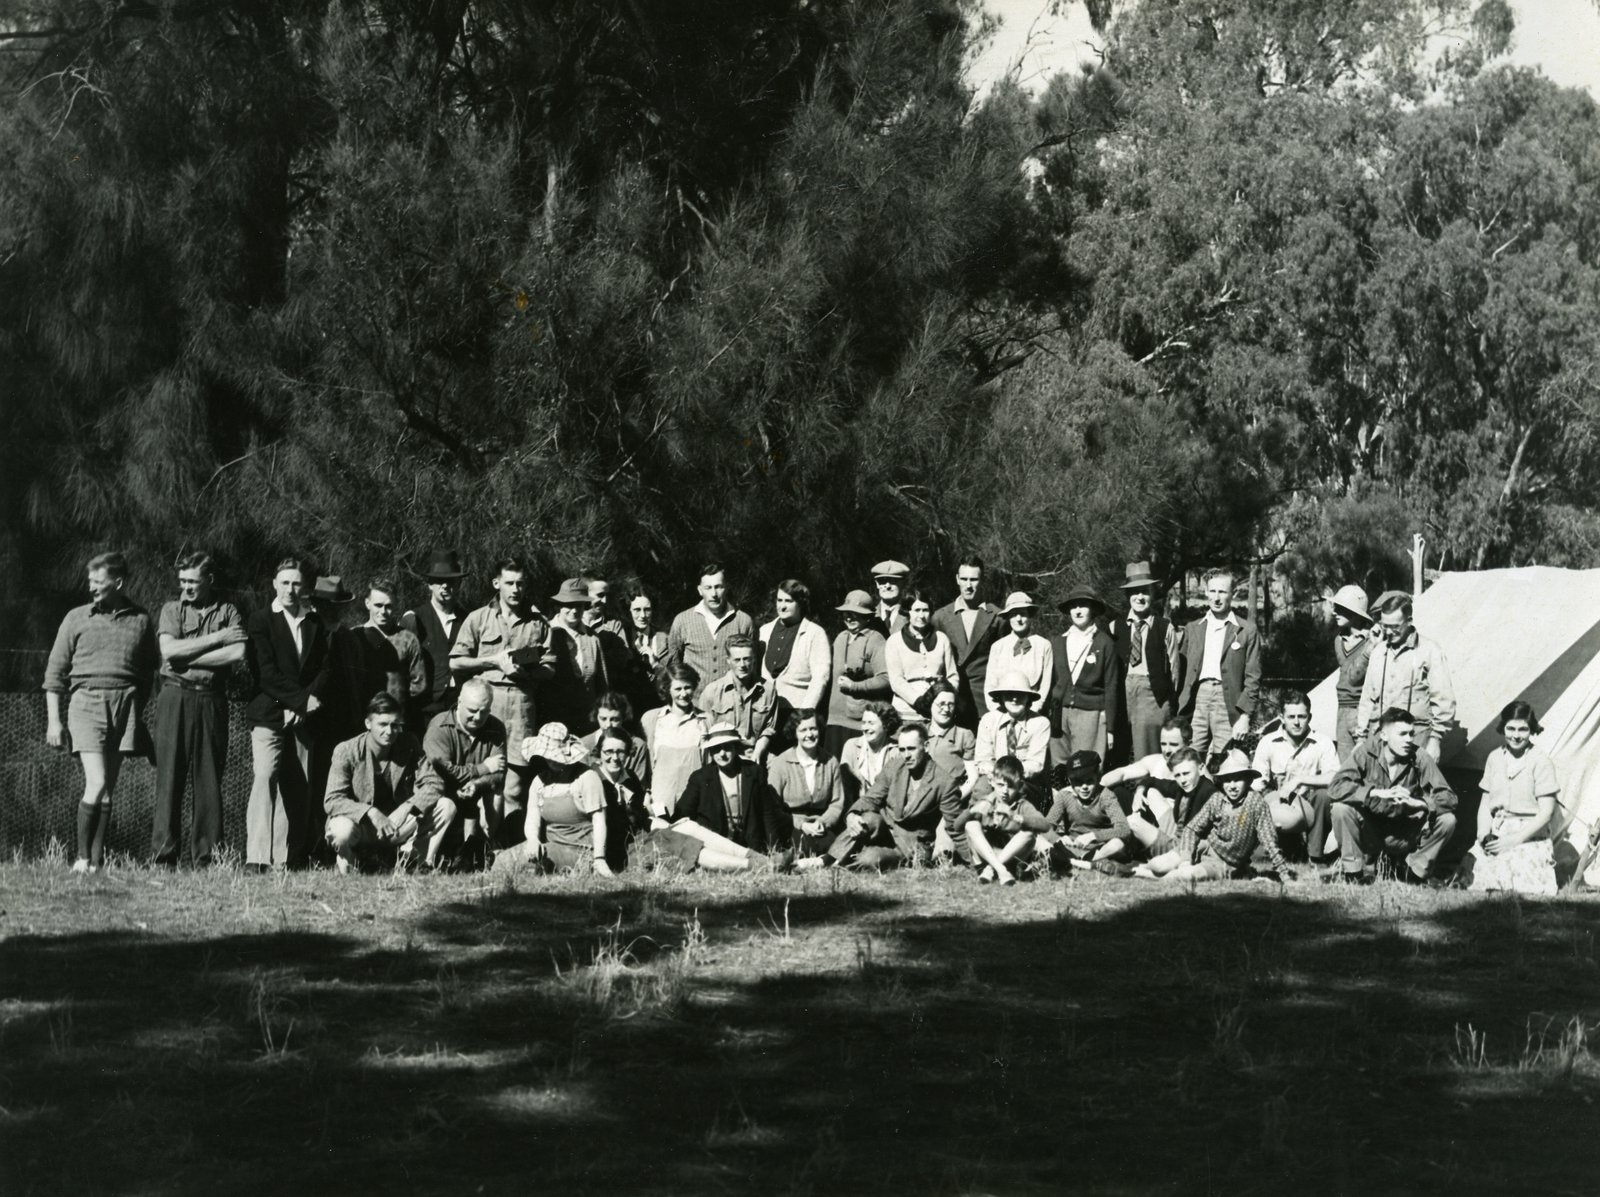 Gould League camp 1937